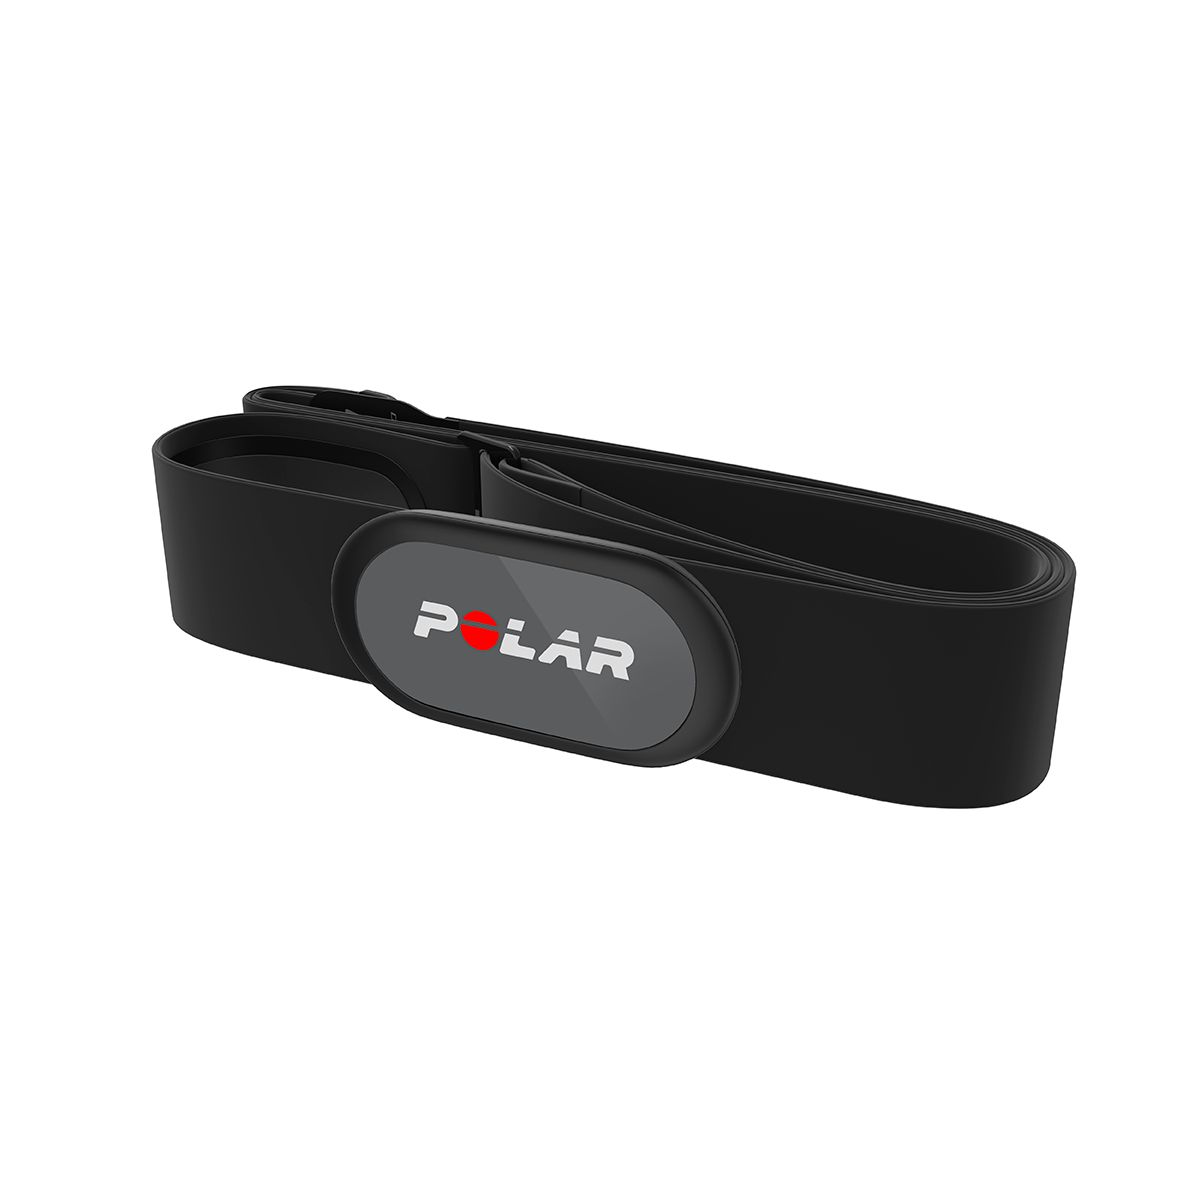 H9 Heart Rate Sensor ANT+/Bluetooth LE incl. Chest Strap